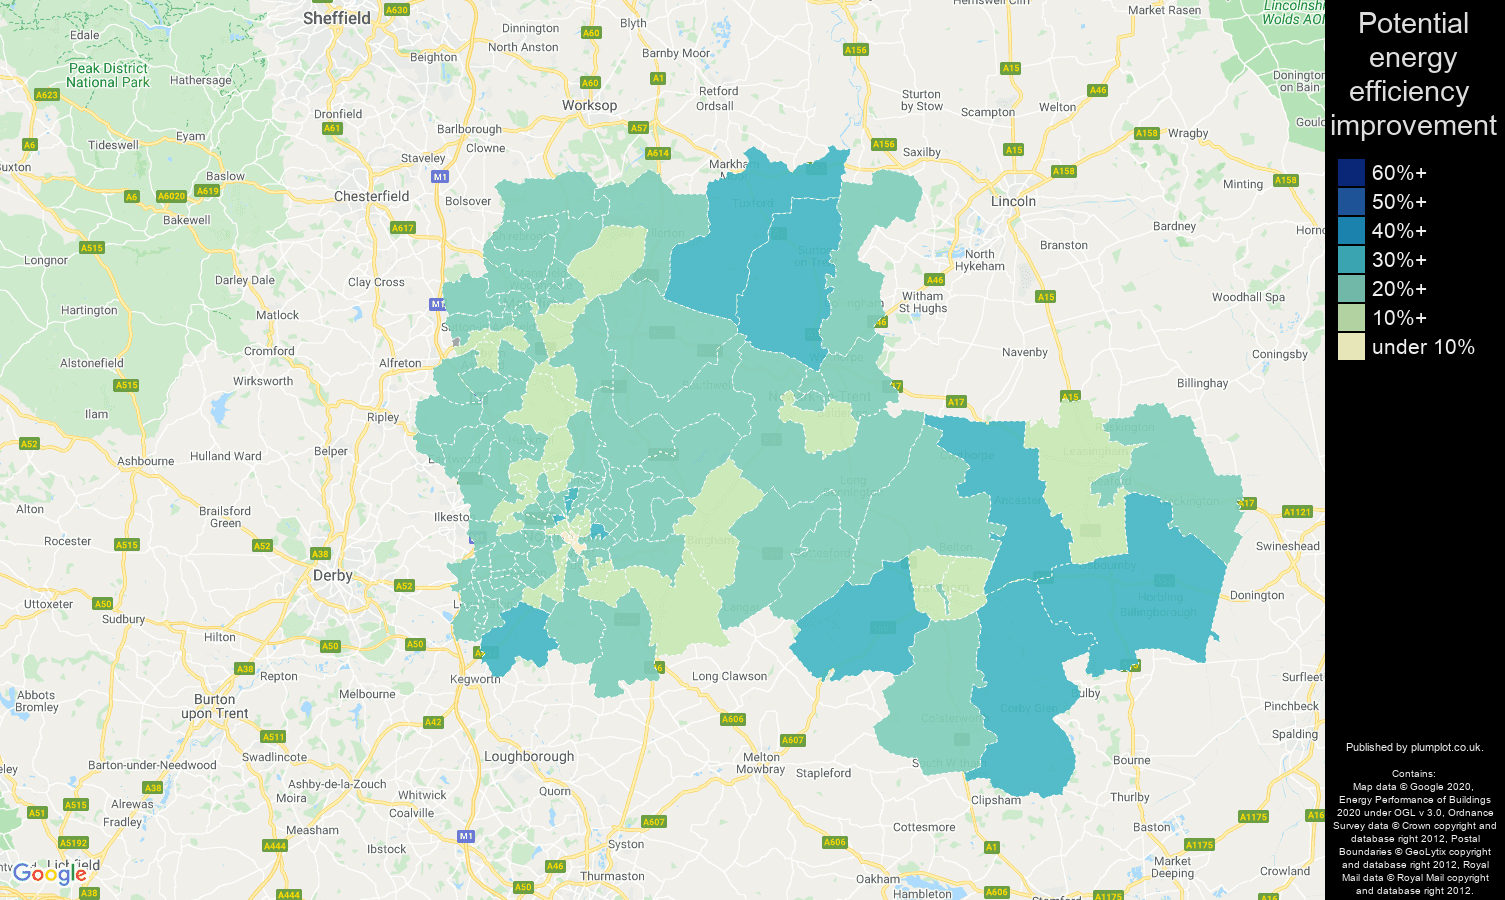 Nottingham map of potential energy efficiency improvement of properties